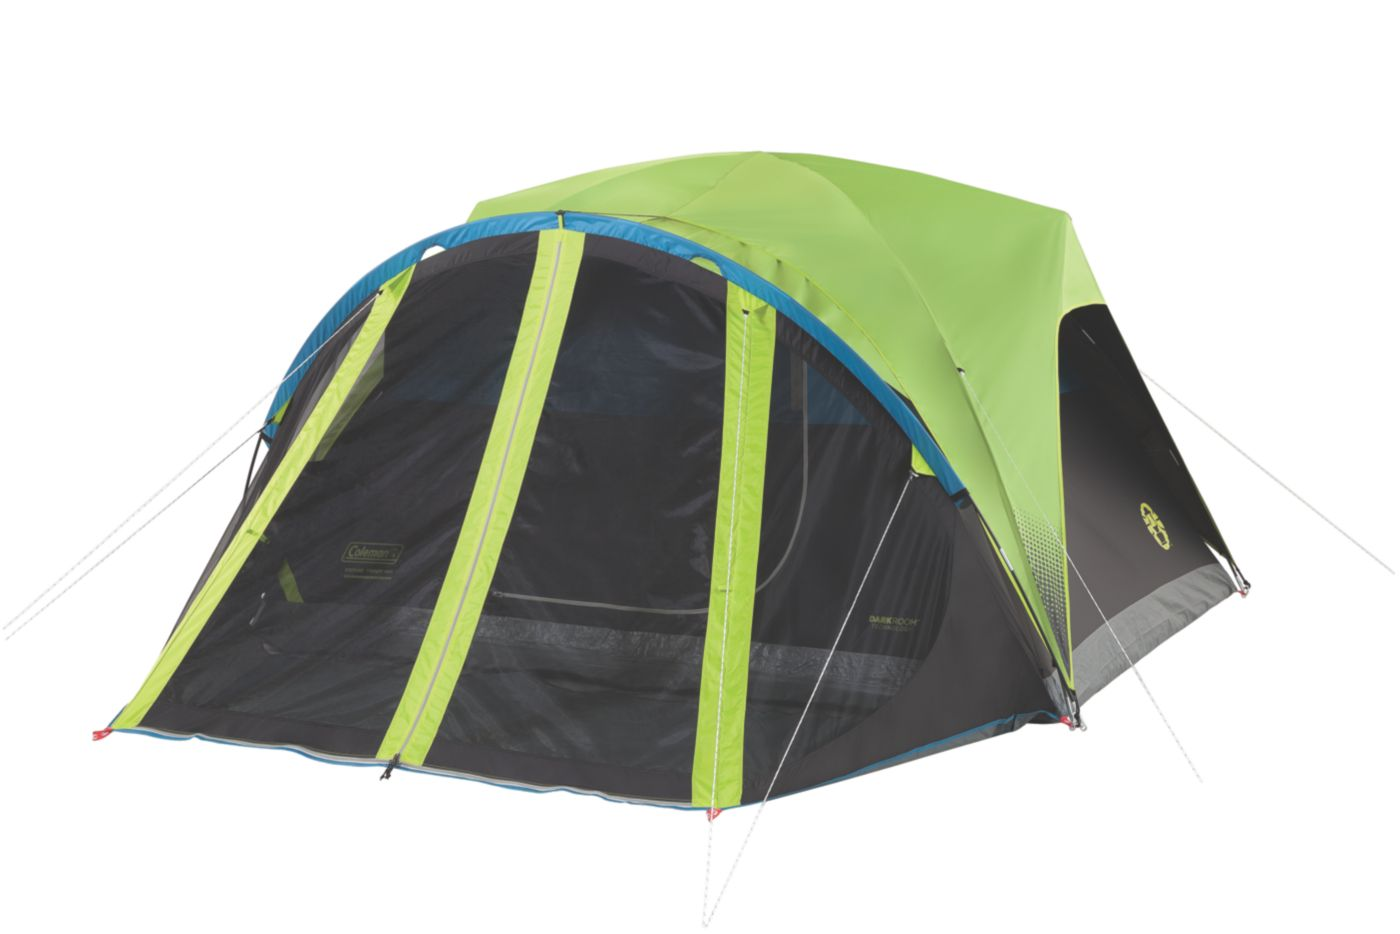 Genial Carlsbad™ 4 Person Dark Room Tent With Screen Room